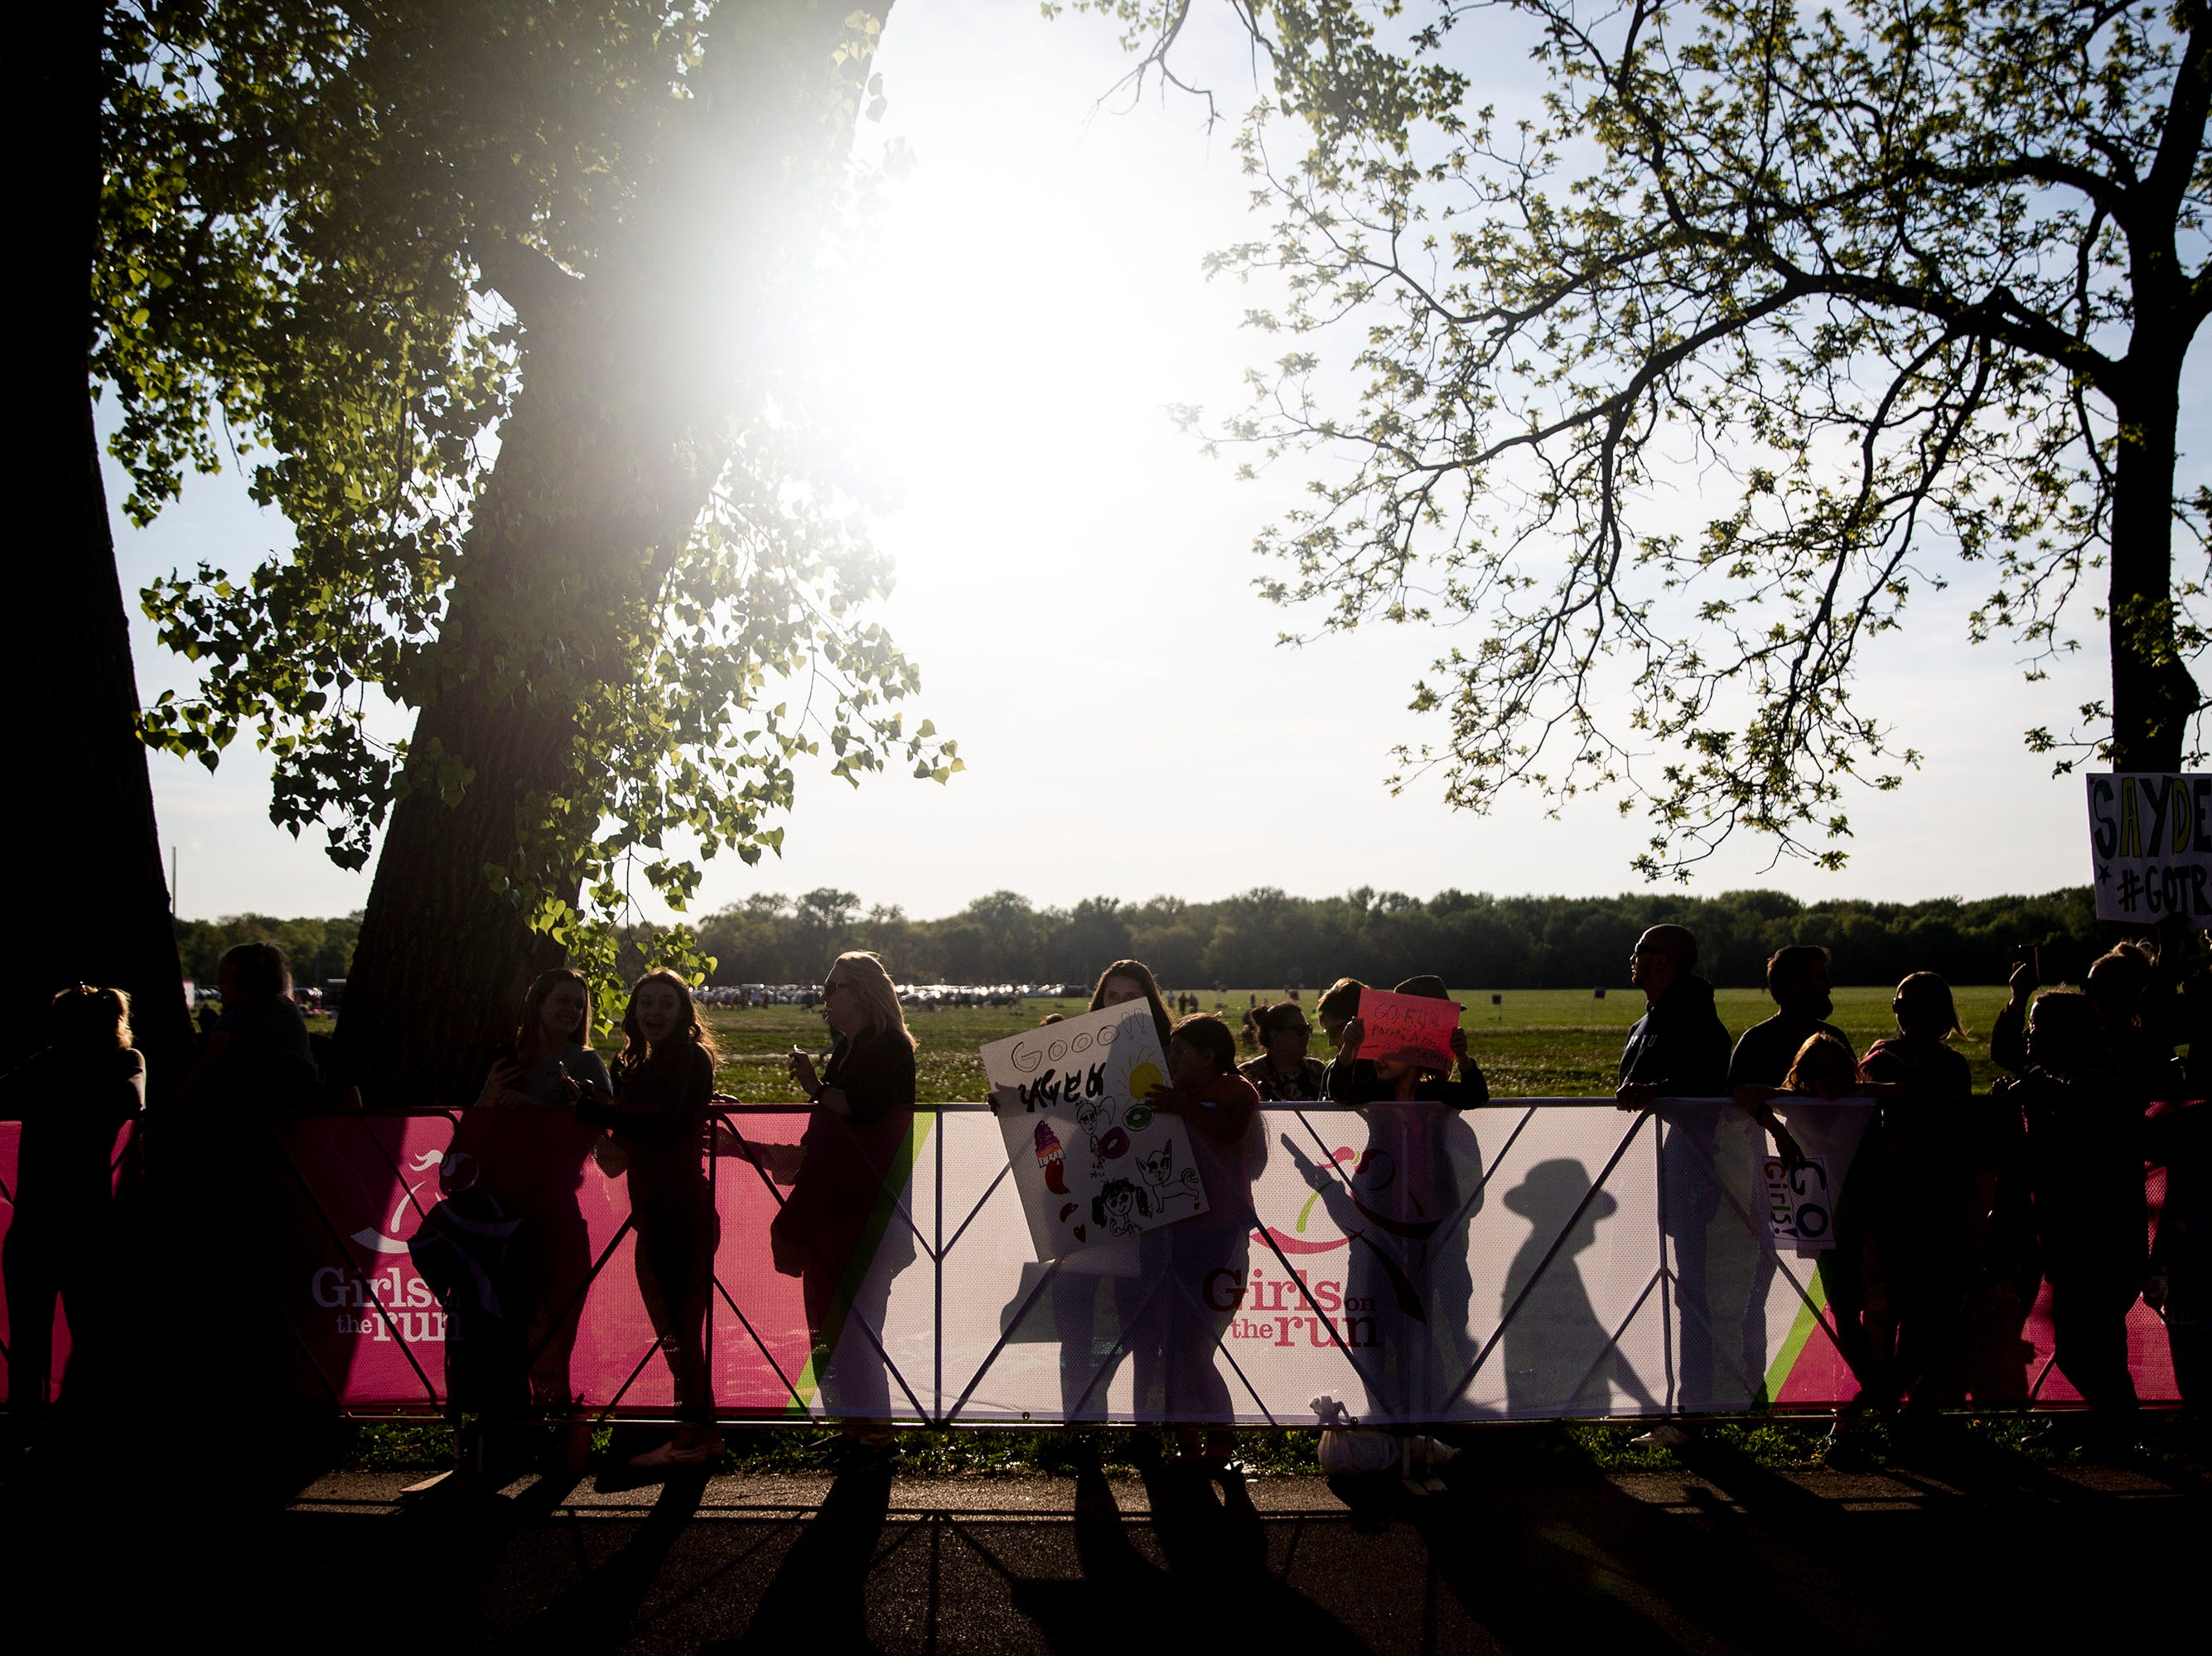 Spectators wait for runners to pass during the Girls on the Run celebration 5K on Tuesday, May 14, 2019, in Water Works Park in Des Moines.